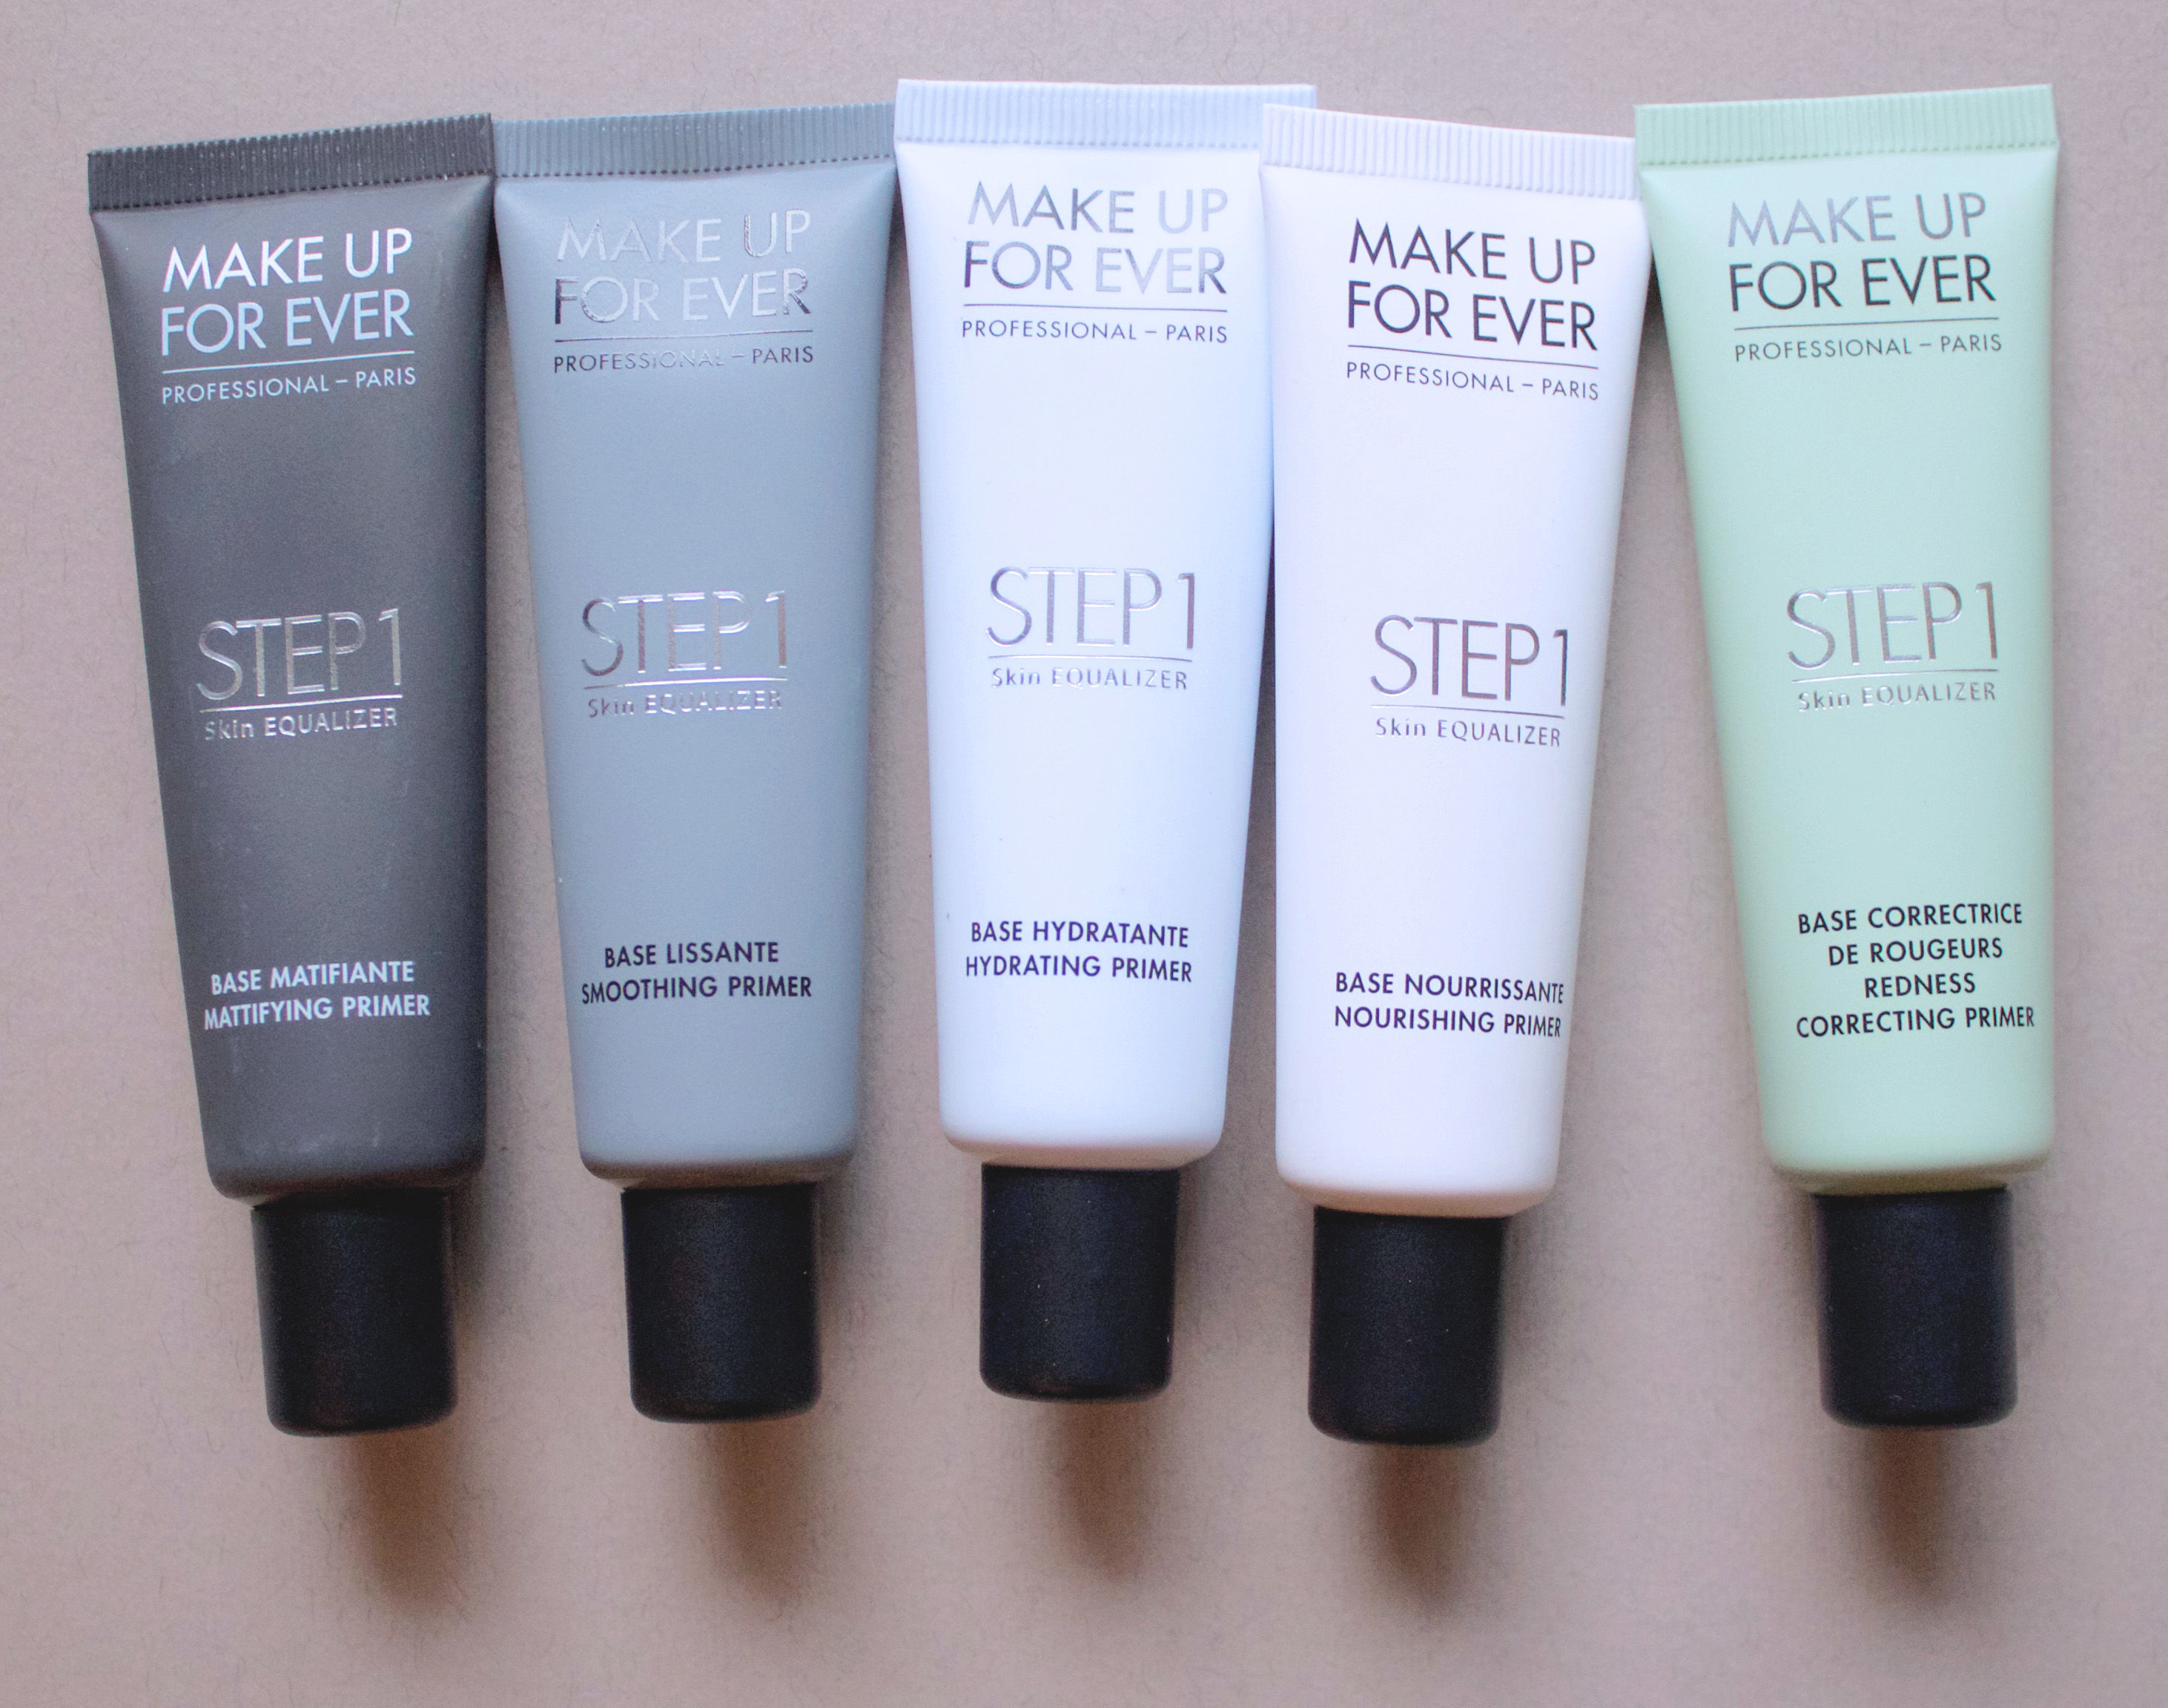 Make Up For Ever Step 1 Skin Equalizers (texture)